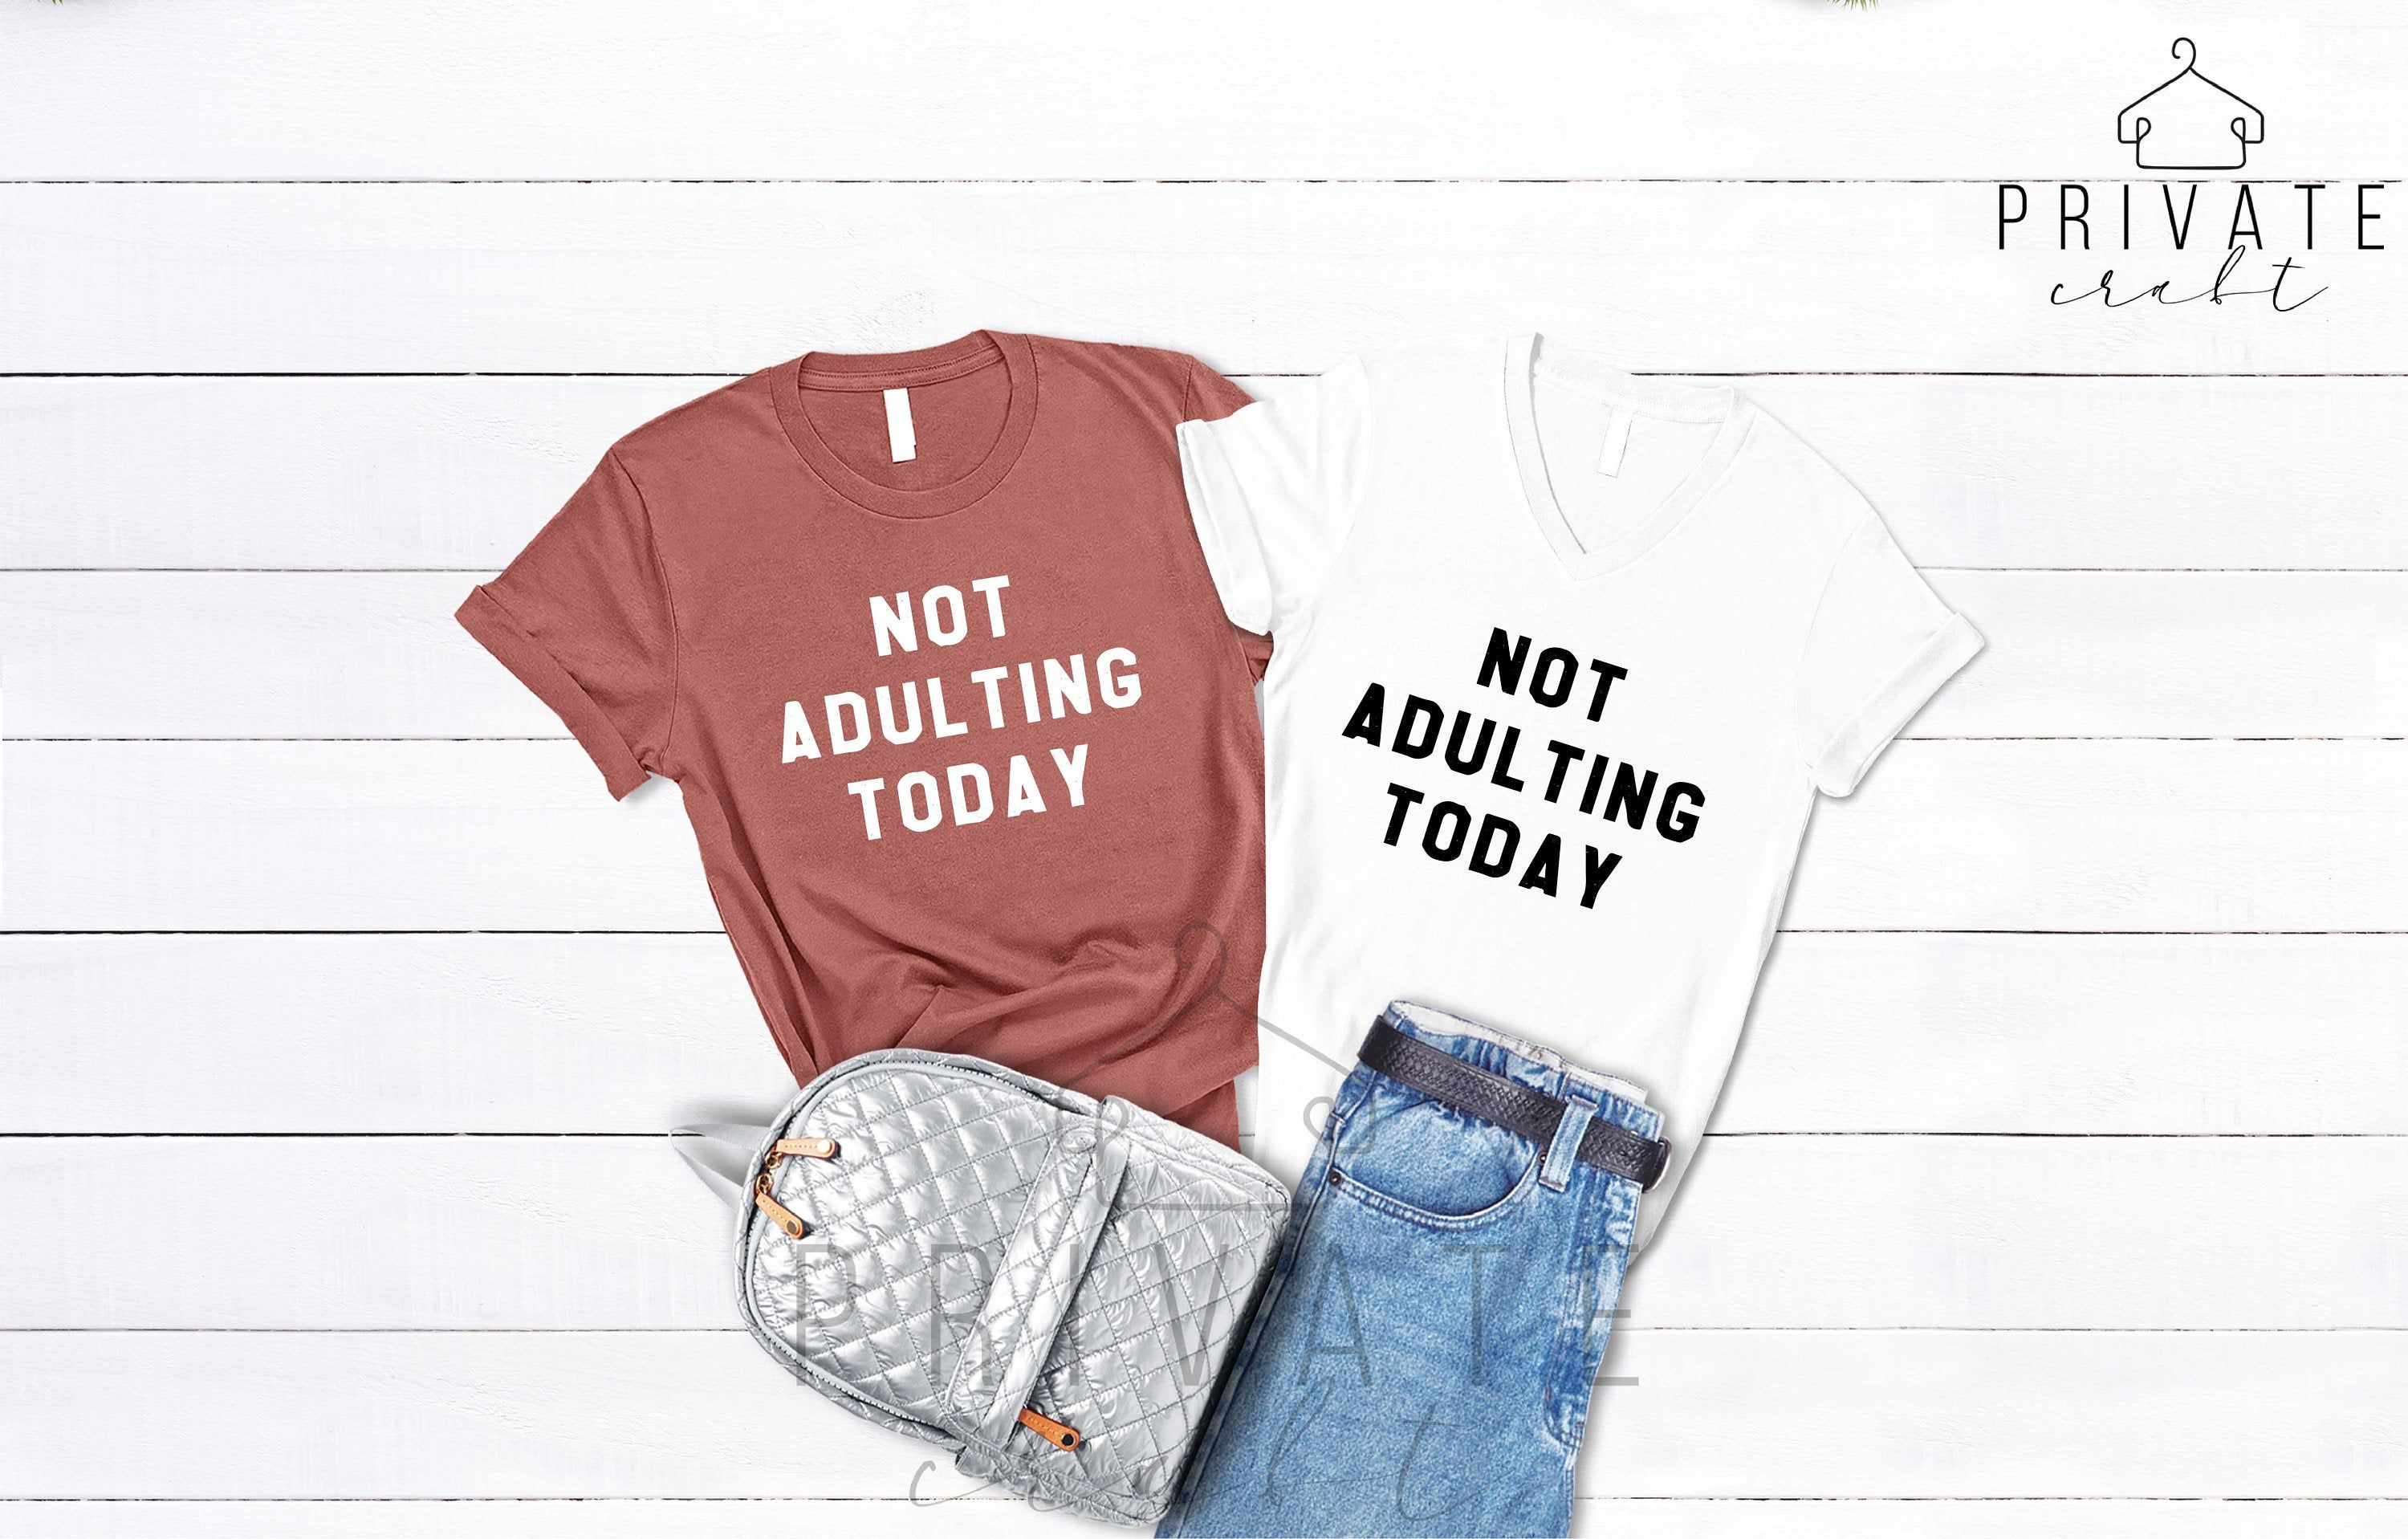 Funny Gift For Mom,Birthday Gift,Funny Adult Shirt For Women With Saying,Graduation Shirt,Womens Funny Graphic Tees,Parents Shirts Funny